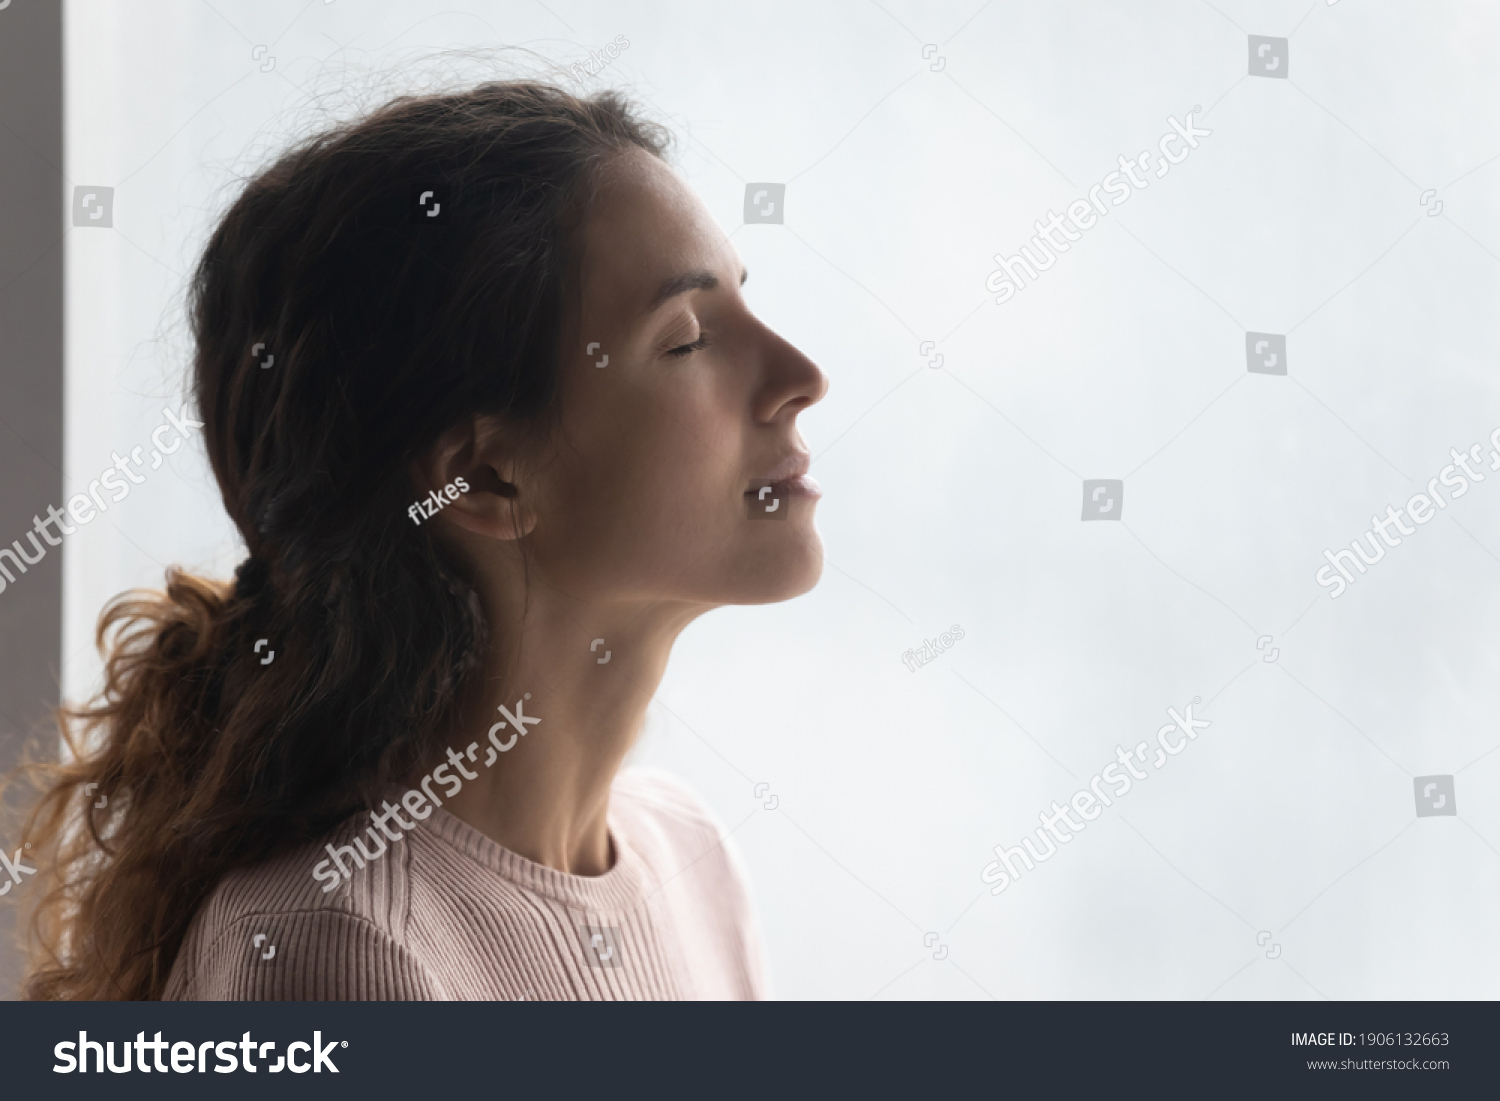 Side head shot view mindful smiling beautiful young woman breathing fresh air, standing near window. Happy millennial caucasian lady enjoying meditation moment, feeling peaceful indoors, copy space. #1906132663